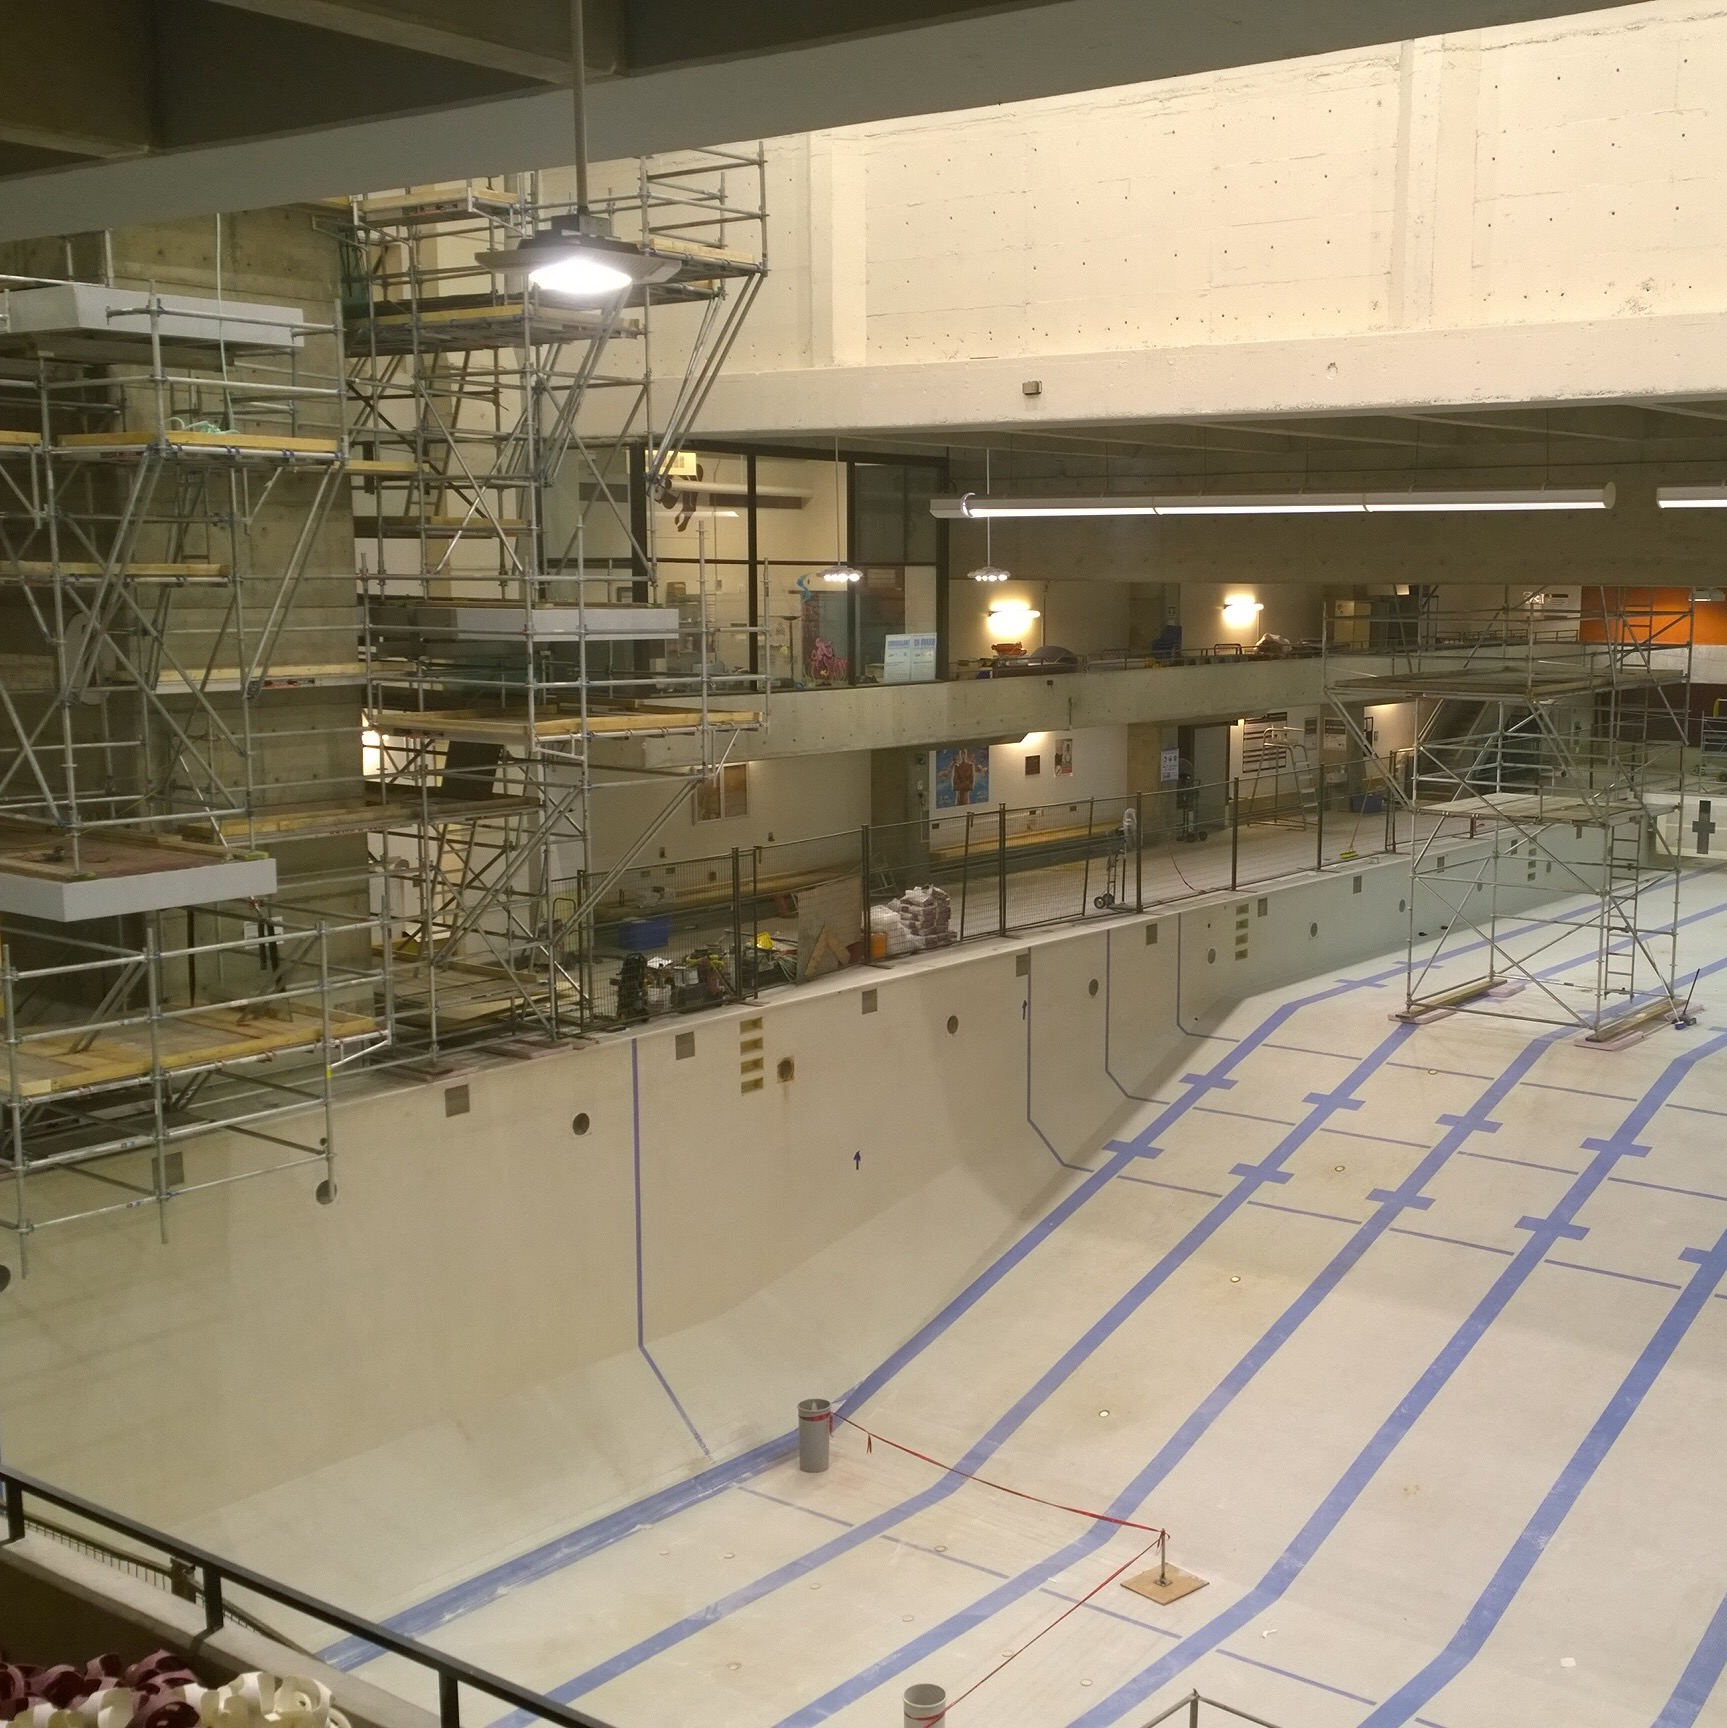 The Montpetit pool, drained and covered in scaffolding